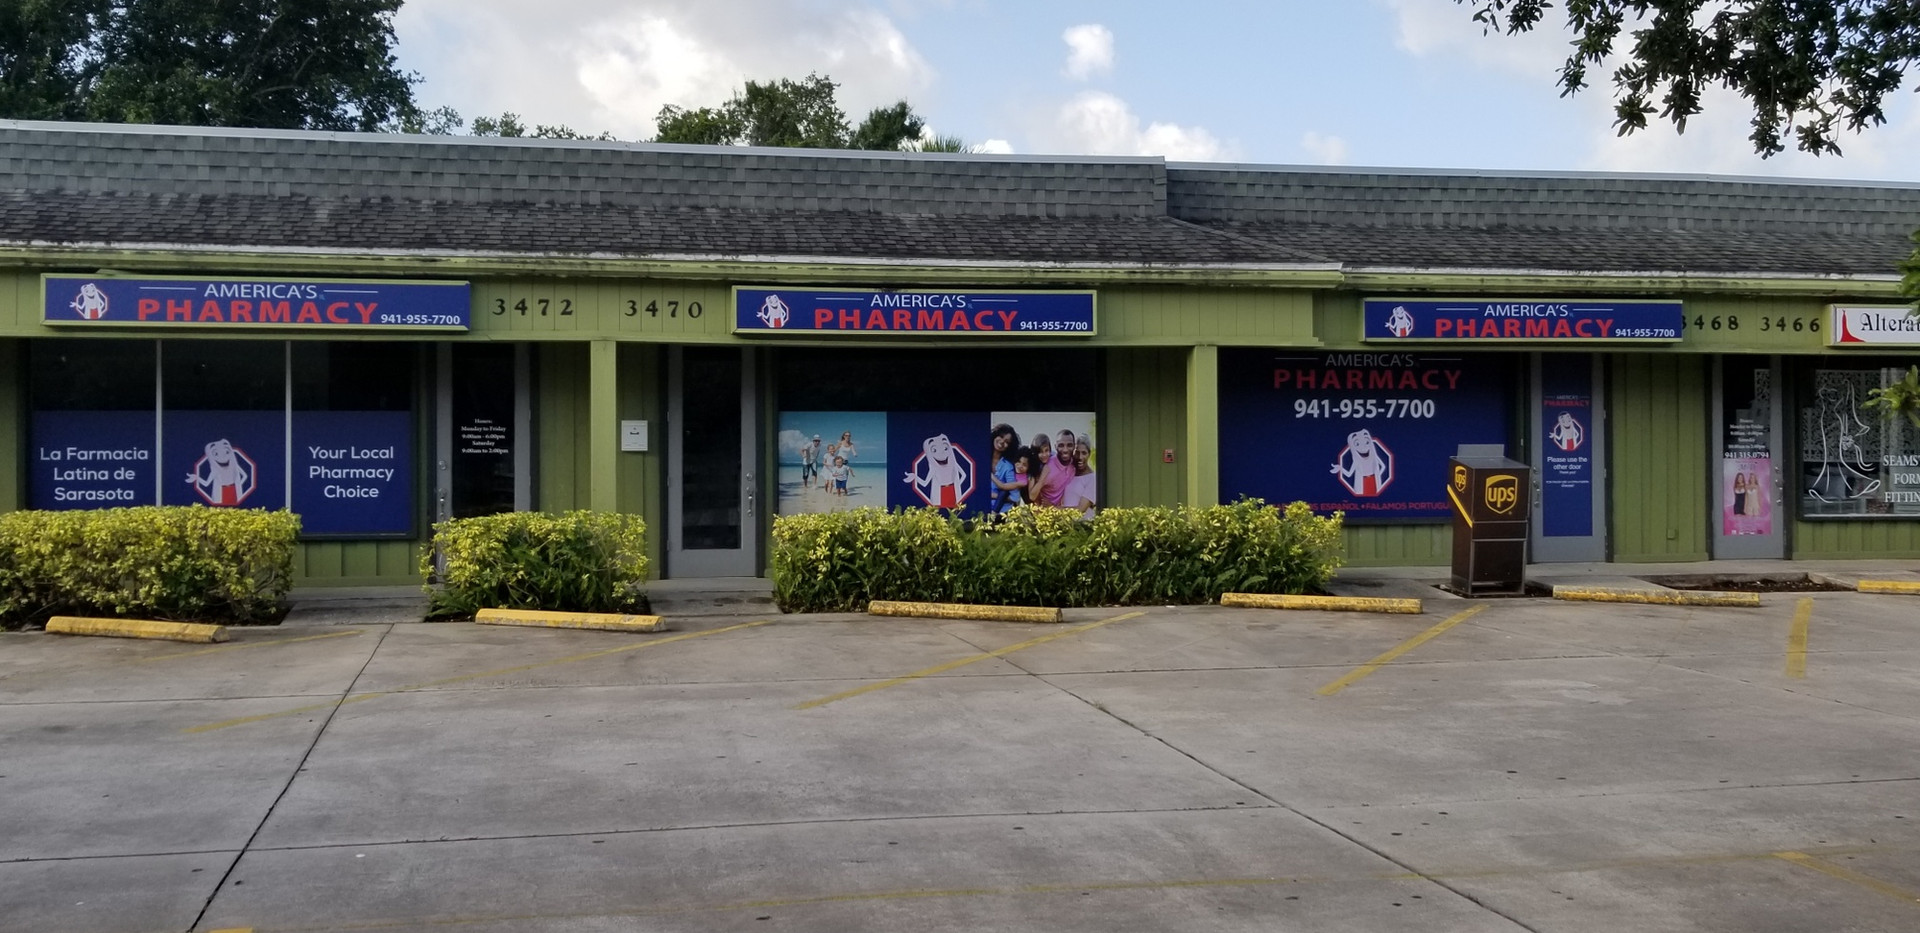 store front with large parking lot